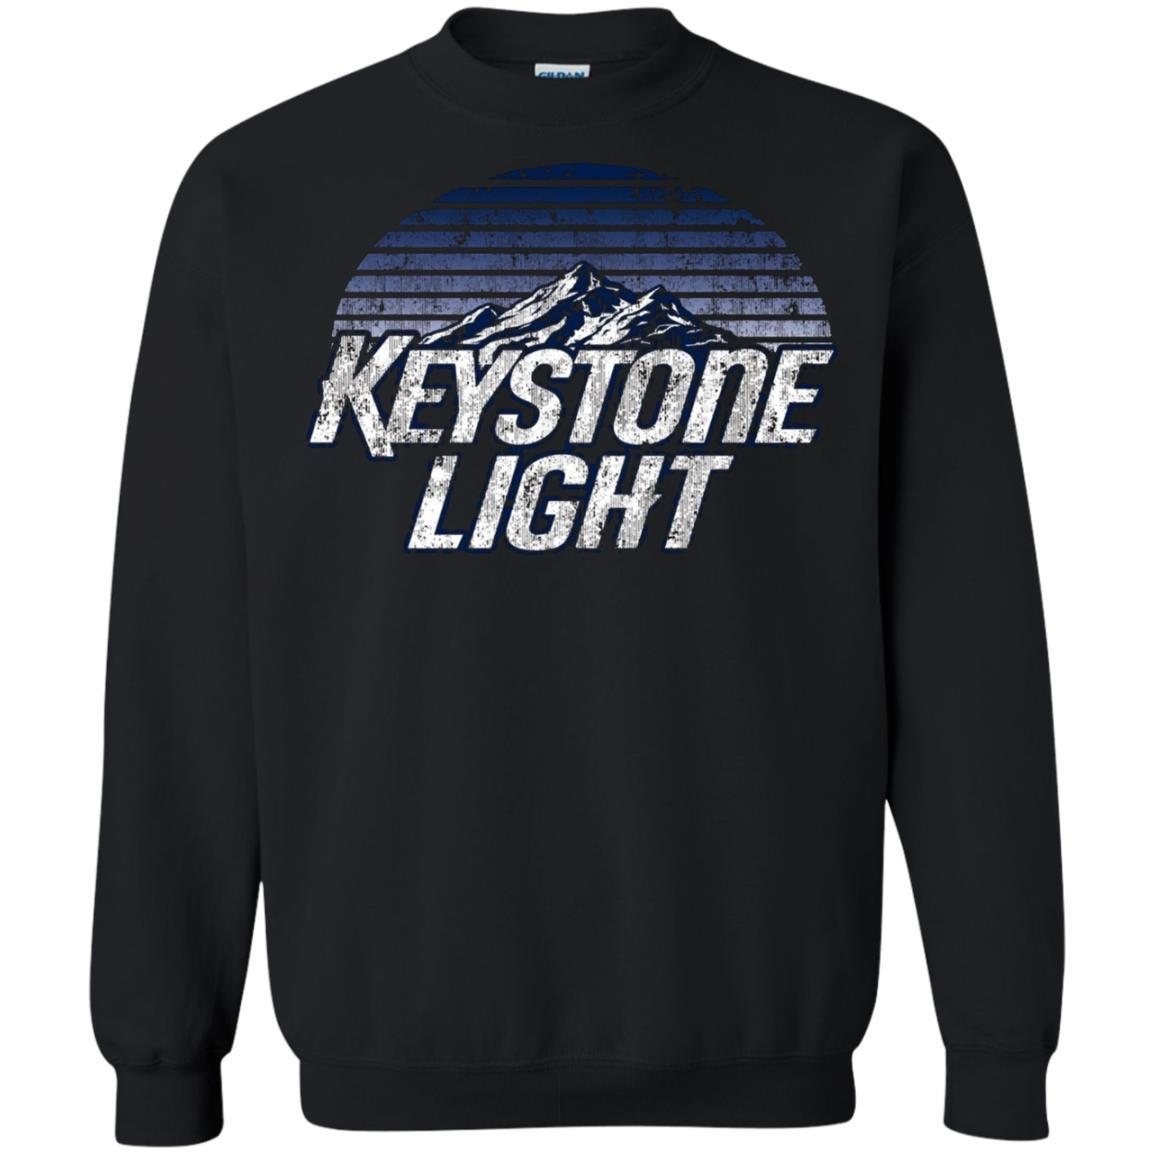 Keystone Light Beer Classic Look - Pullover Sweatshirt Black / 5XL